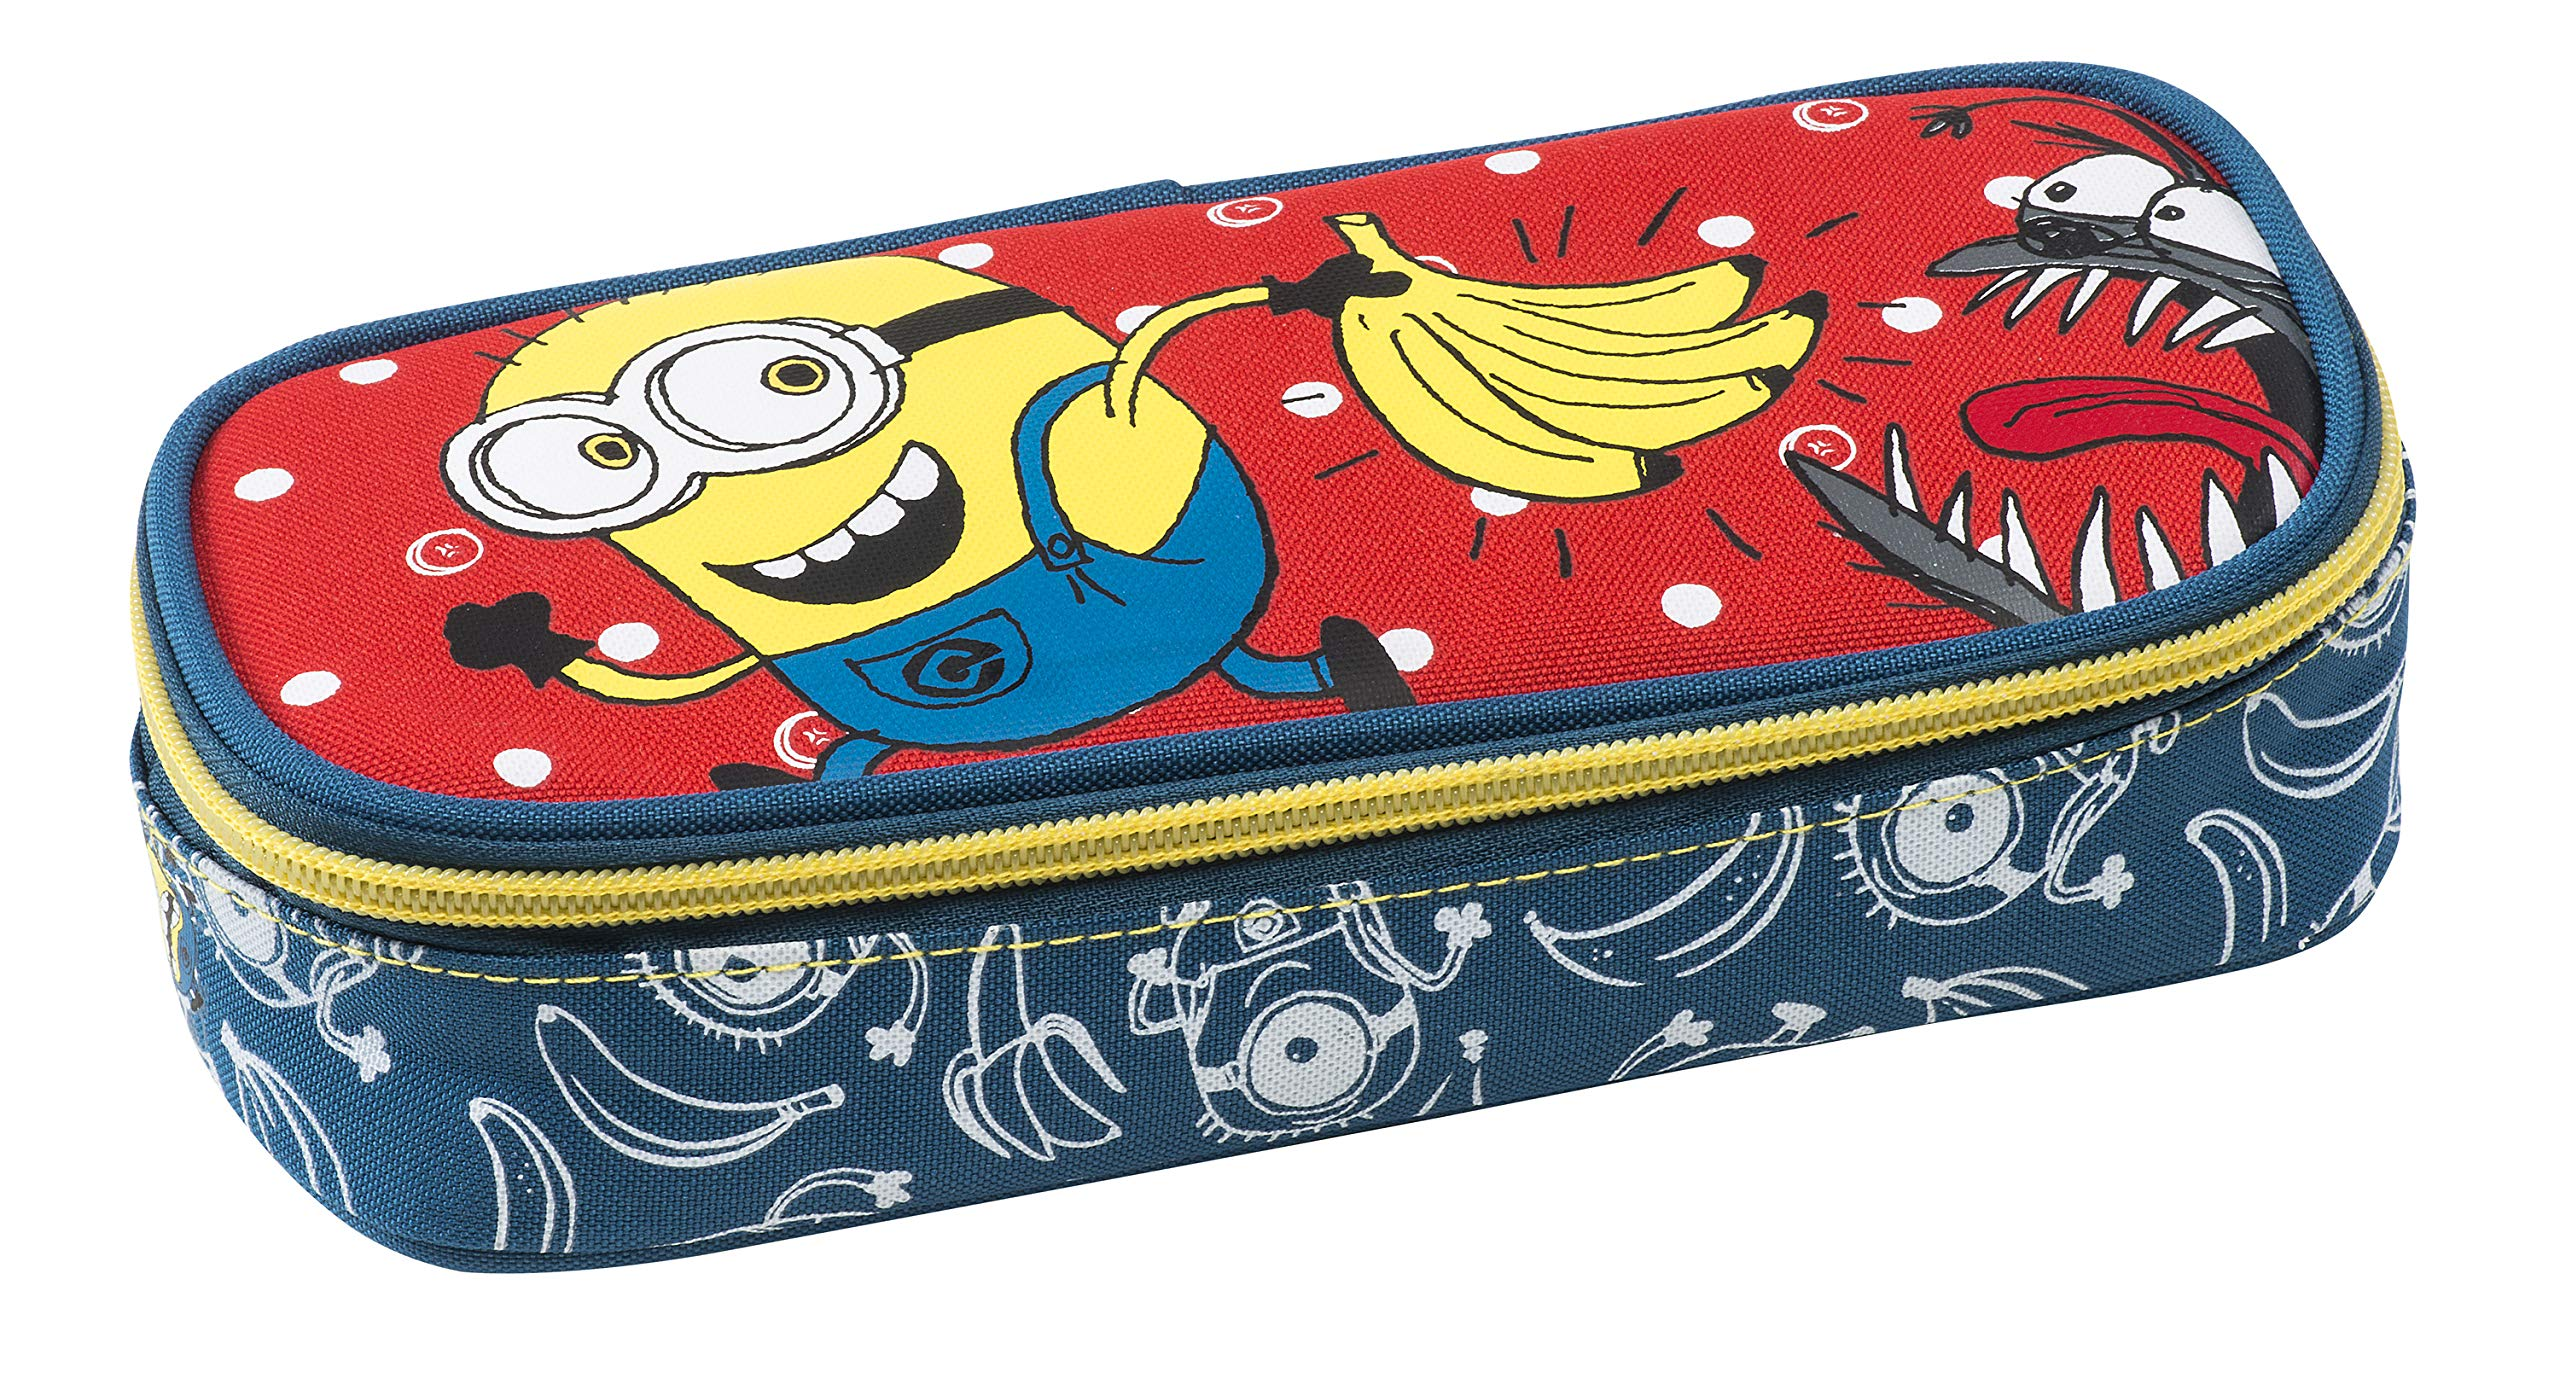 Graffiti Despicable Me Minions Estuches, 22 cm, Multicolor